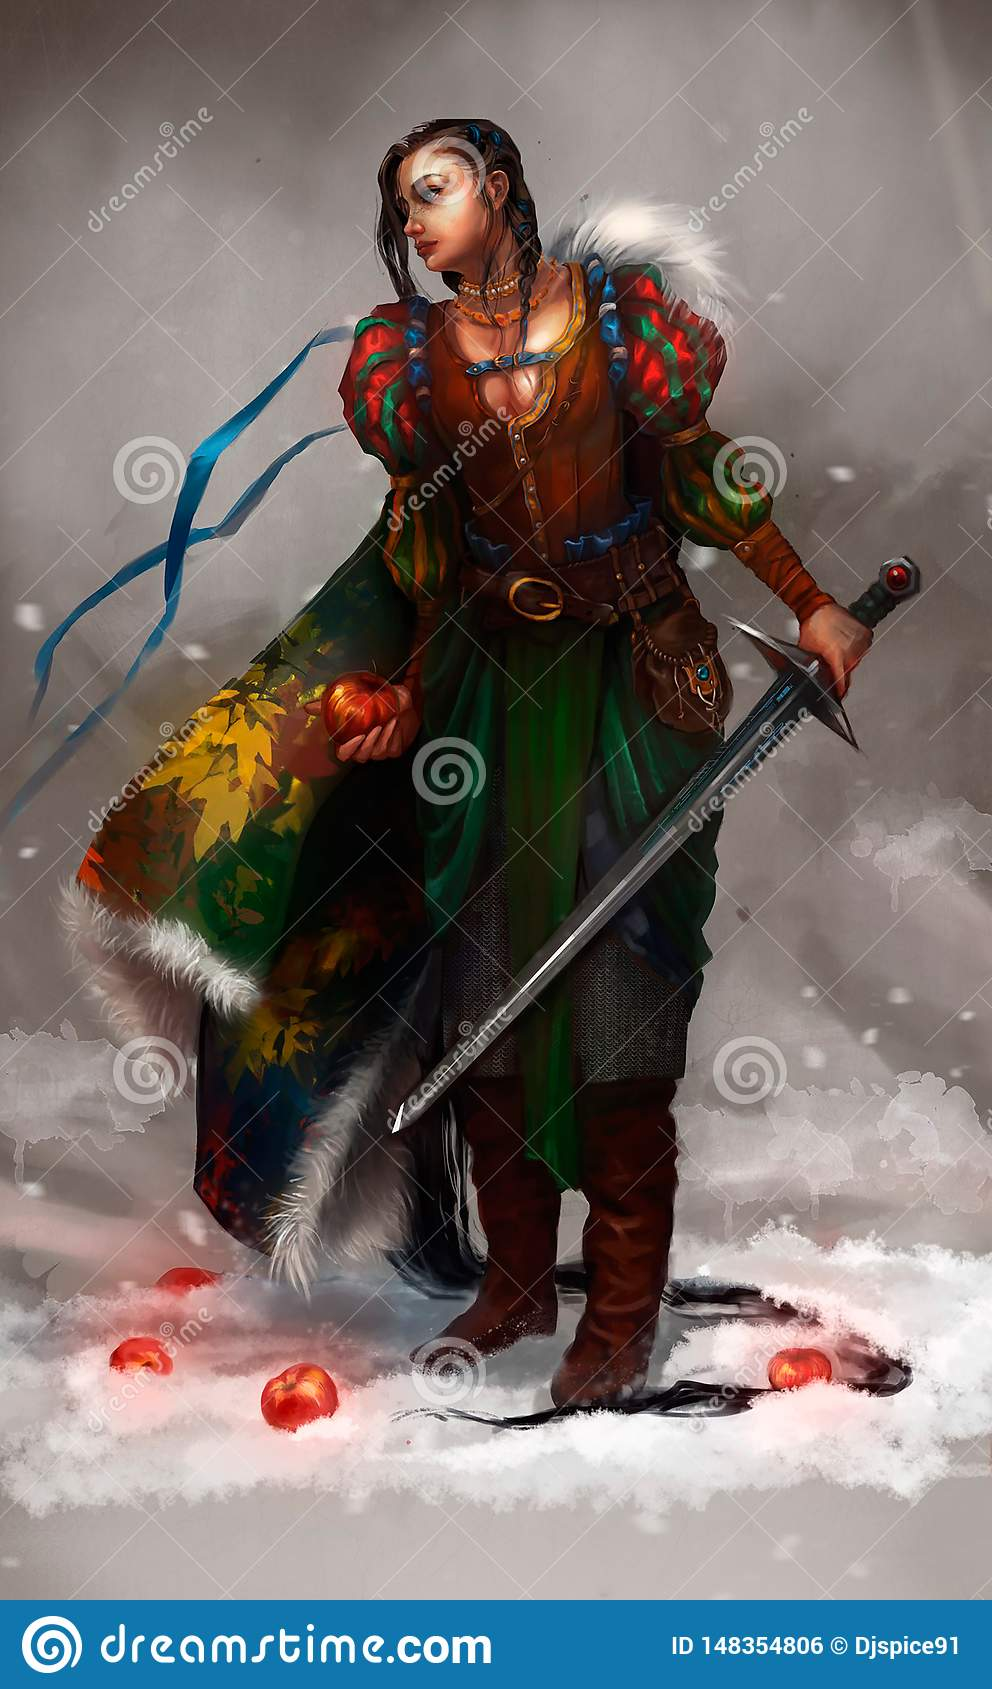 Illustration of a girl with a sword